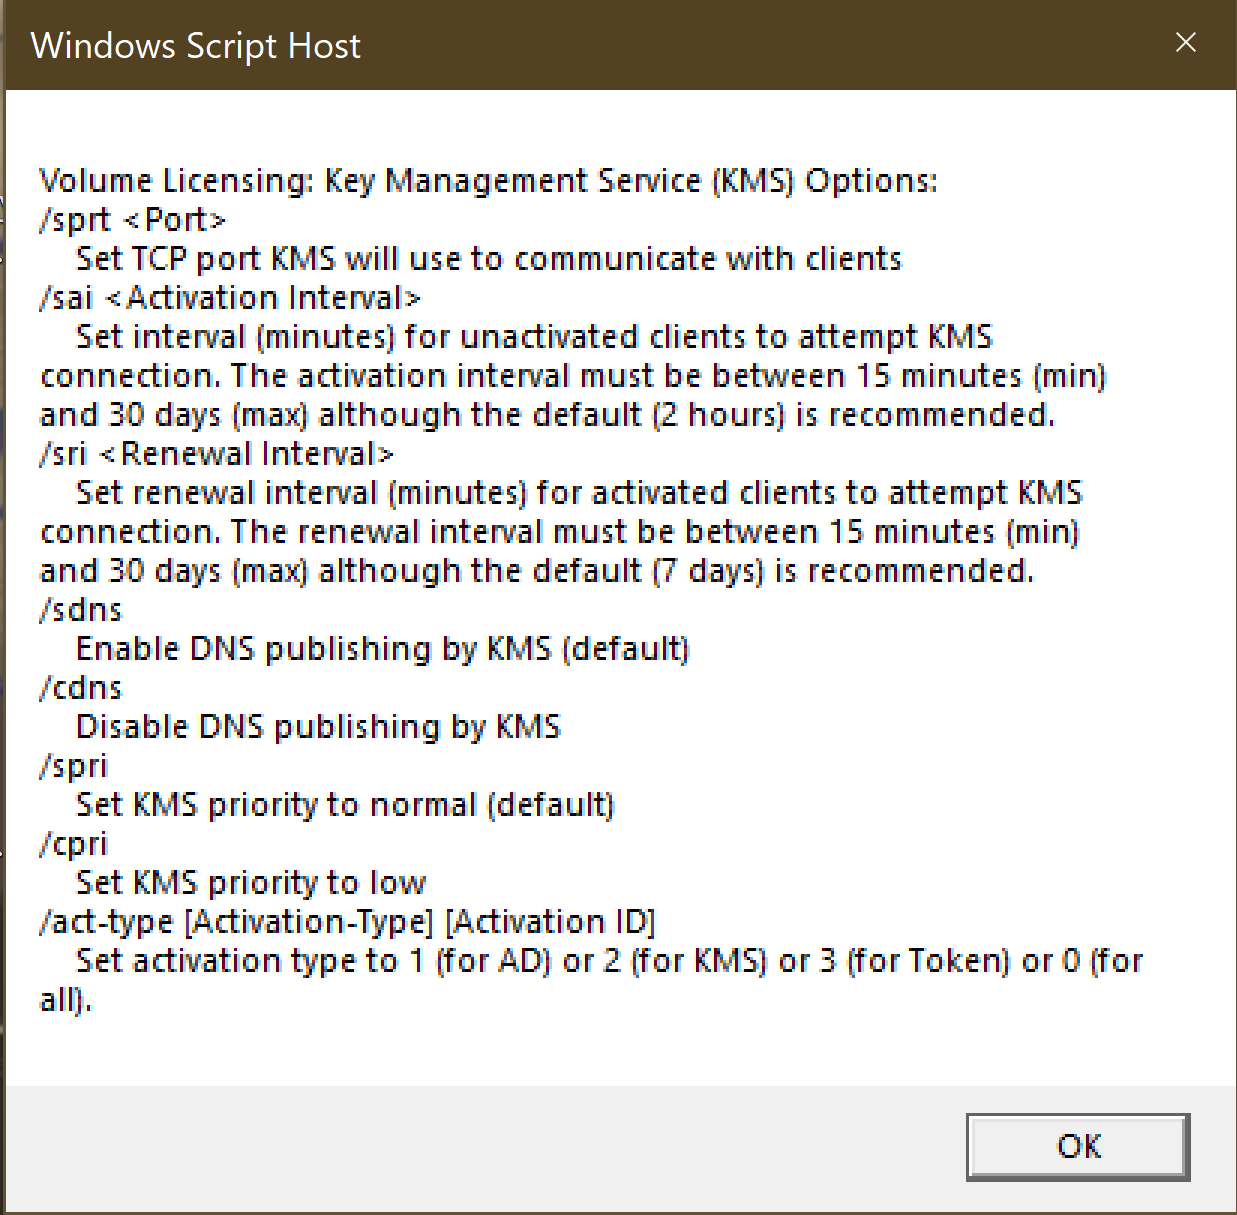 Windows Script Host pop up on startup ever since virus removal and reinstall of windows 10 pro c837dcba-df3f-4436-9d18-20f1e179728e?upload=true.png